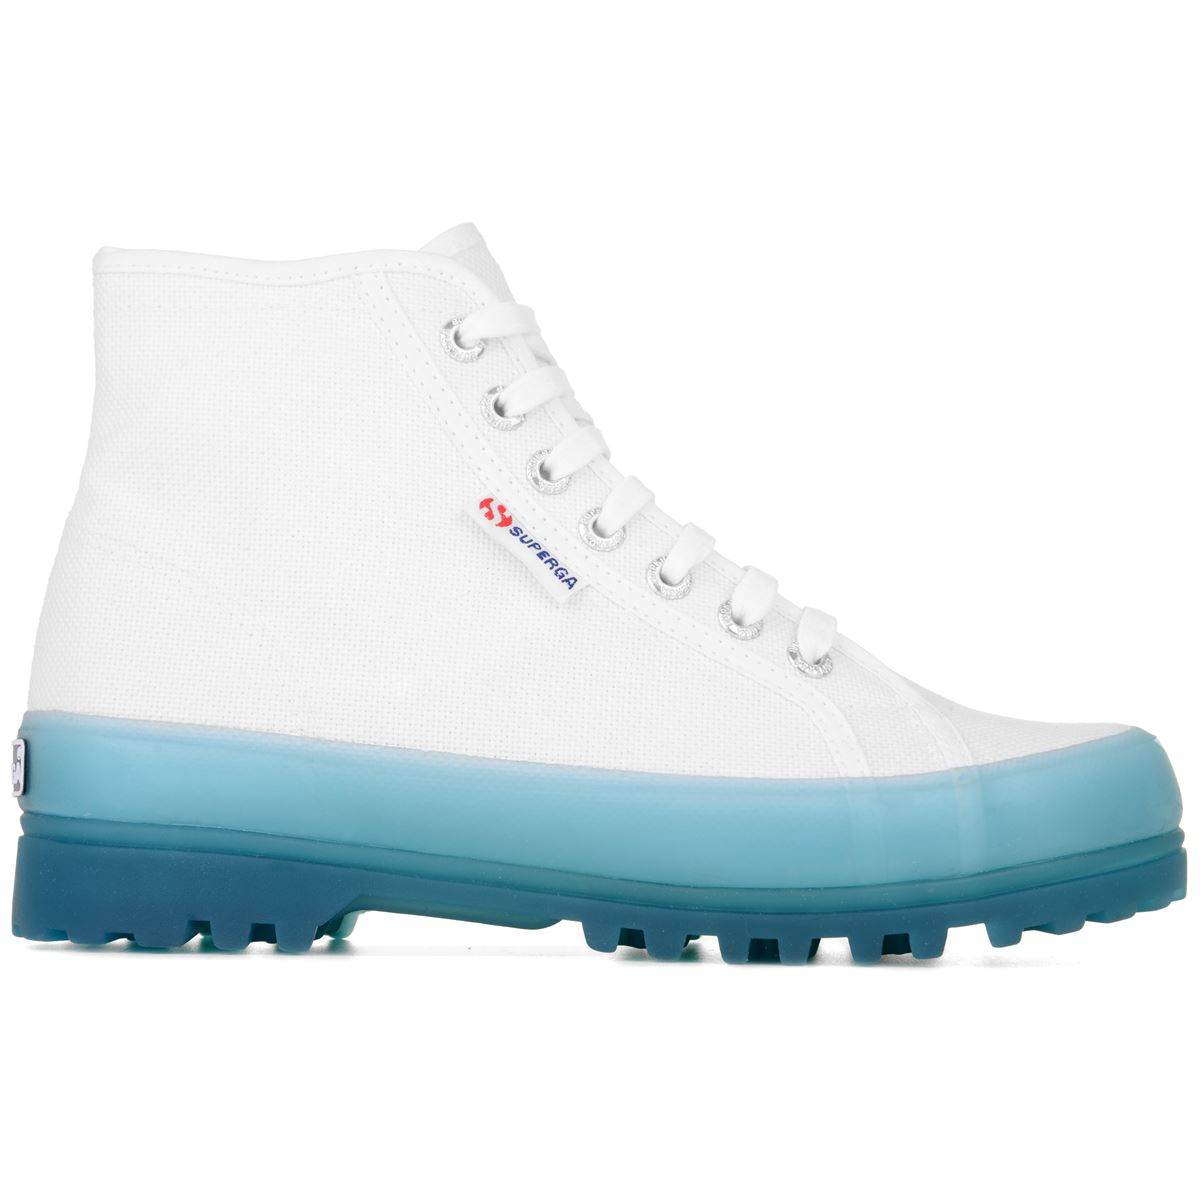 Italian Ankle Boots Superga for men and women-S1114XW